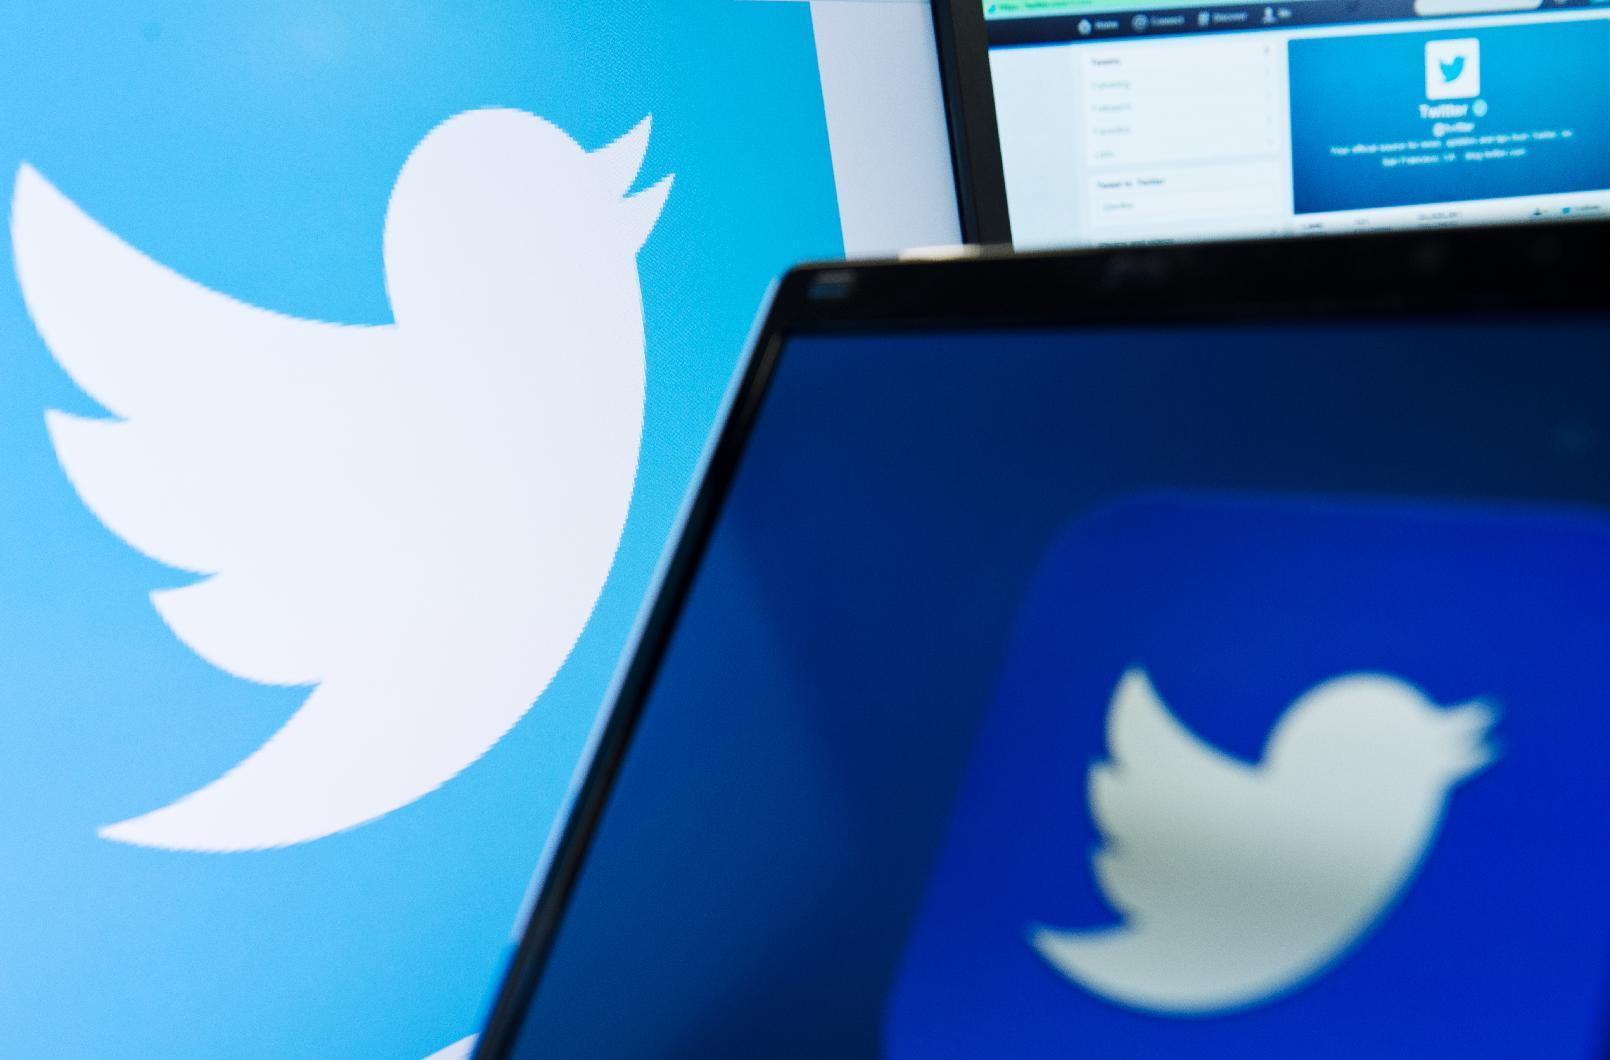 Twitter to test filter for offensive messages